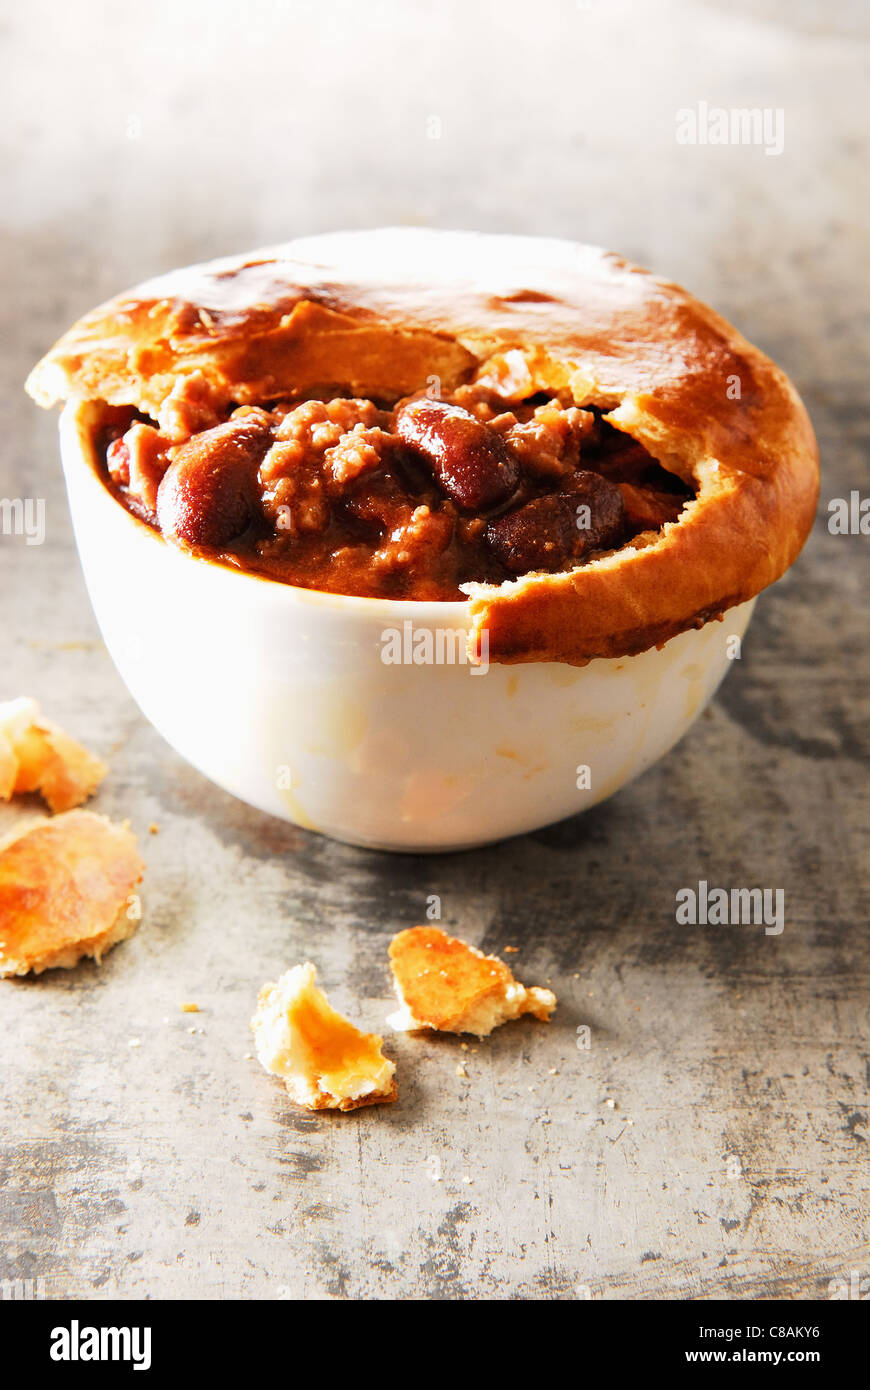 Chili con carne with pastry crust - Stock Image